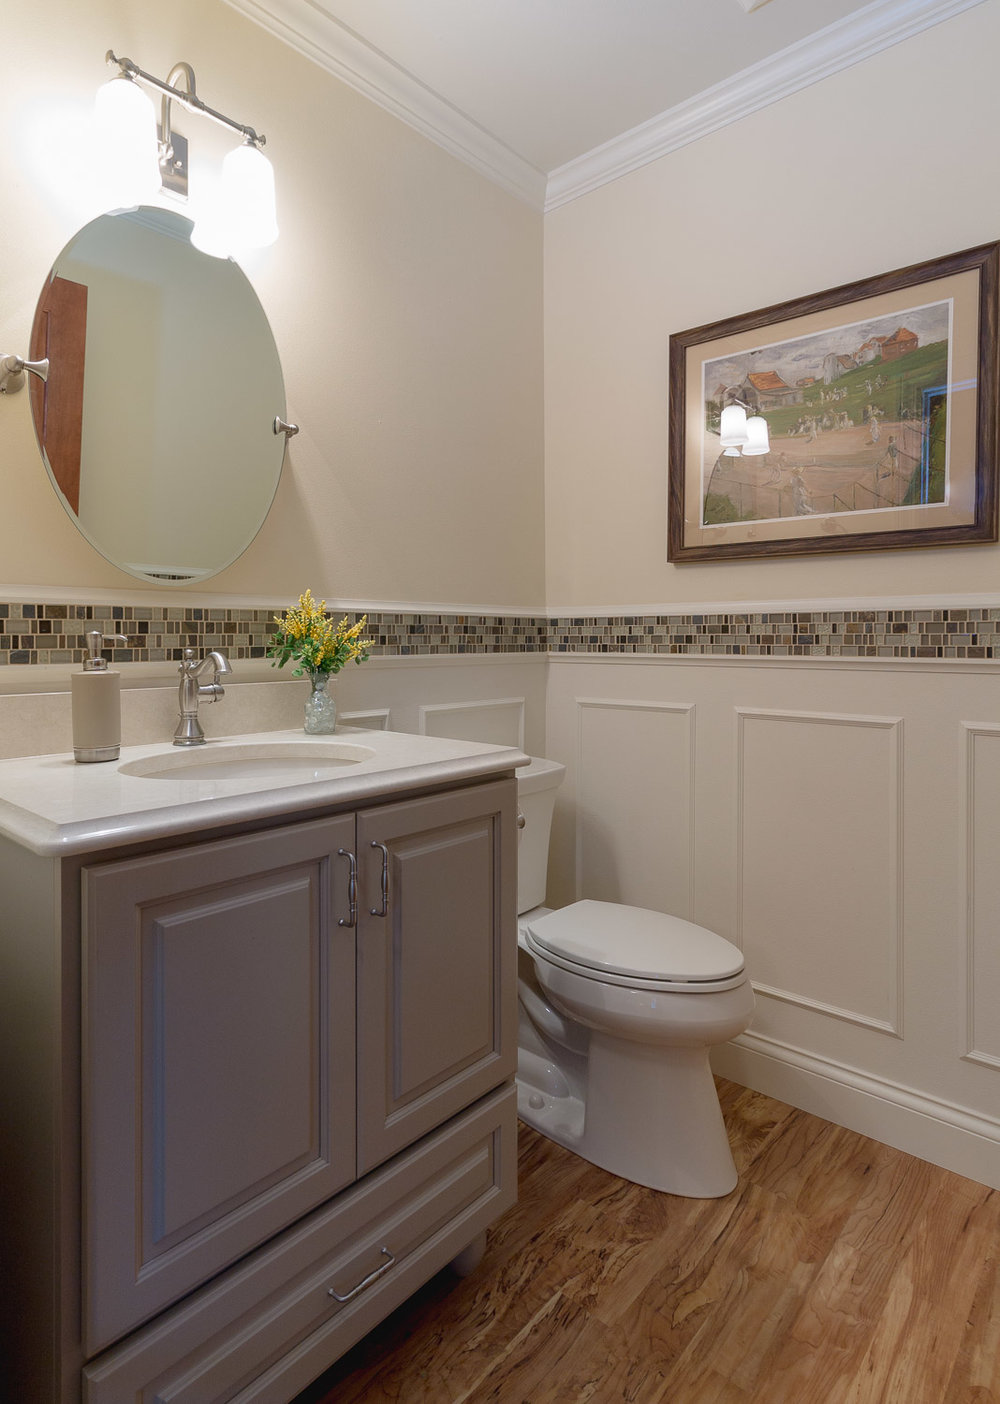 this free standing,furniture style powder room vanity has bun feet and integrates with wainscot design.